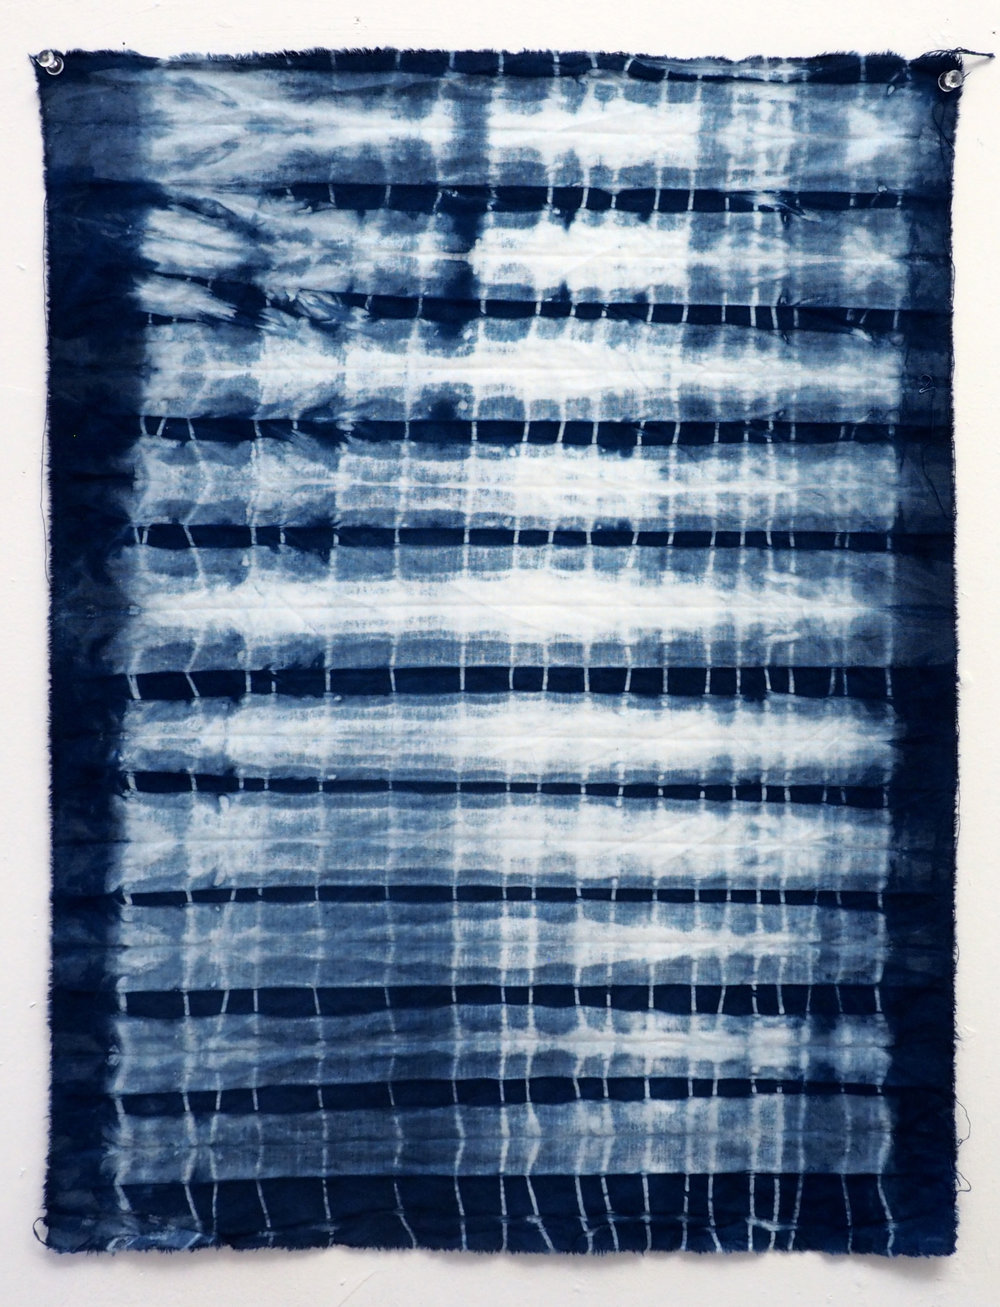 Indigo shibori on cotton 21 x 15.5 in 2017